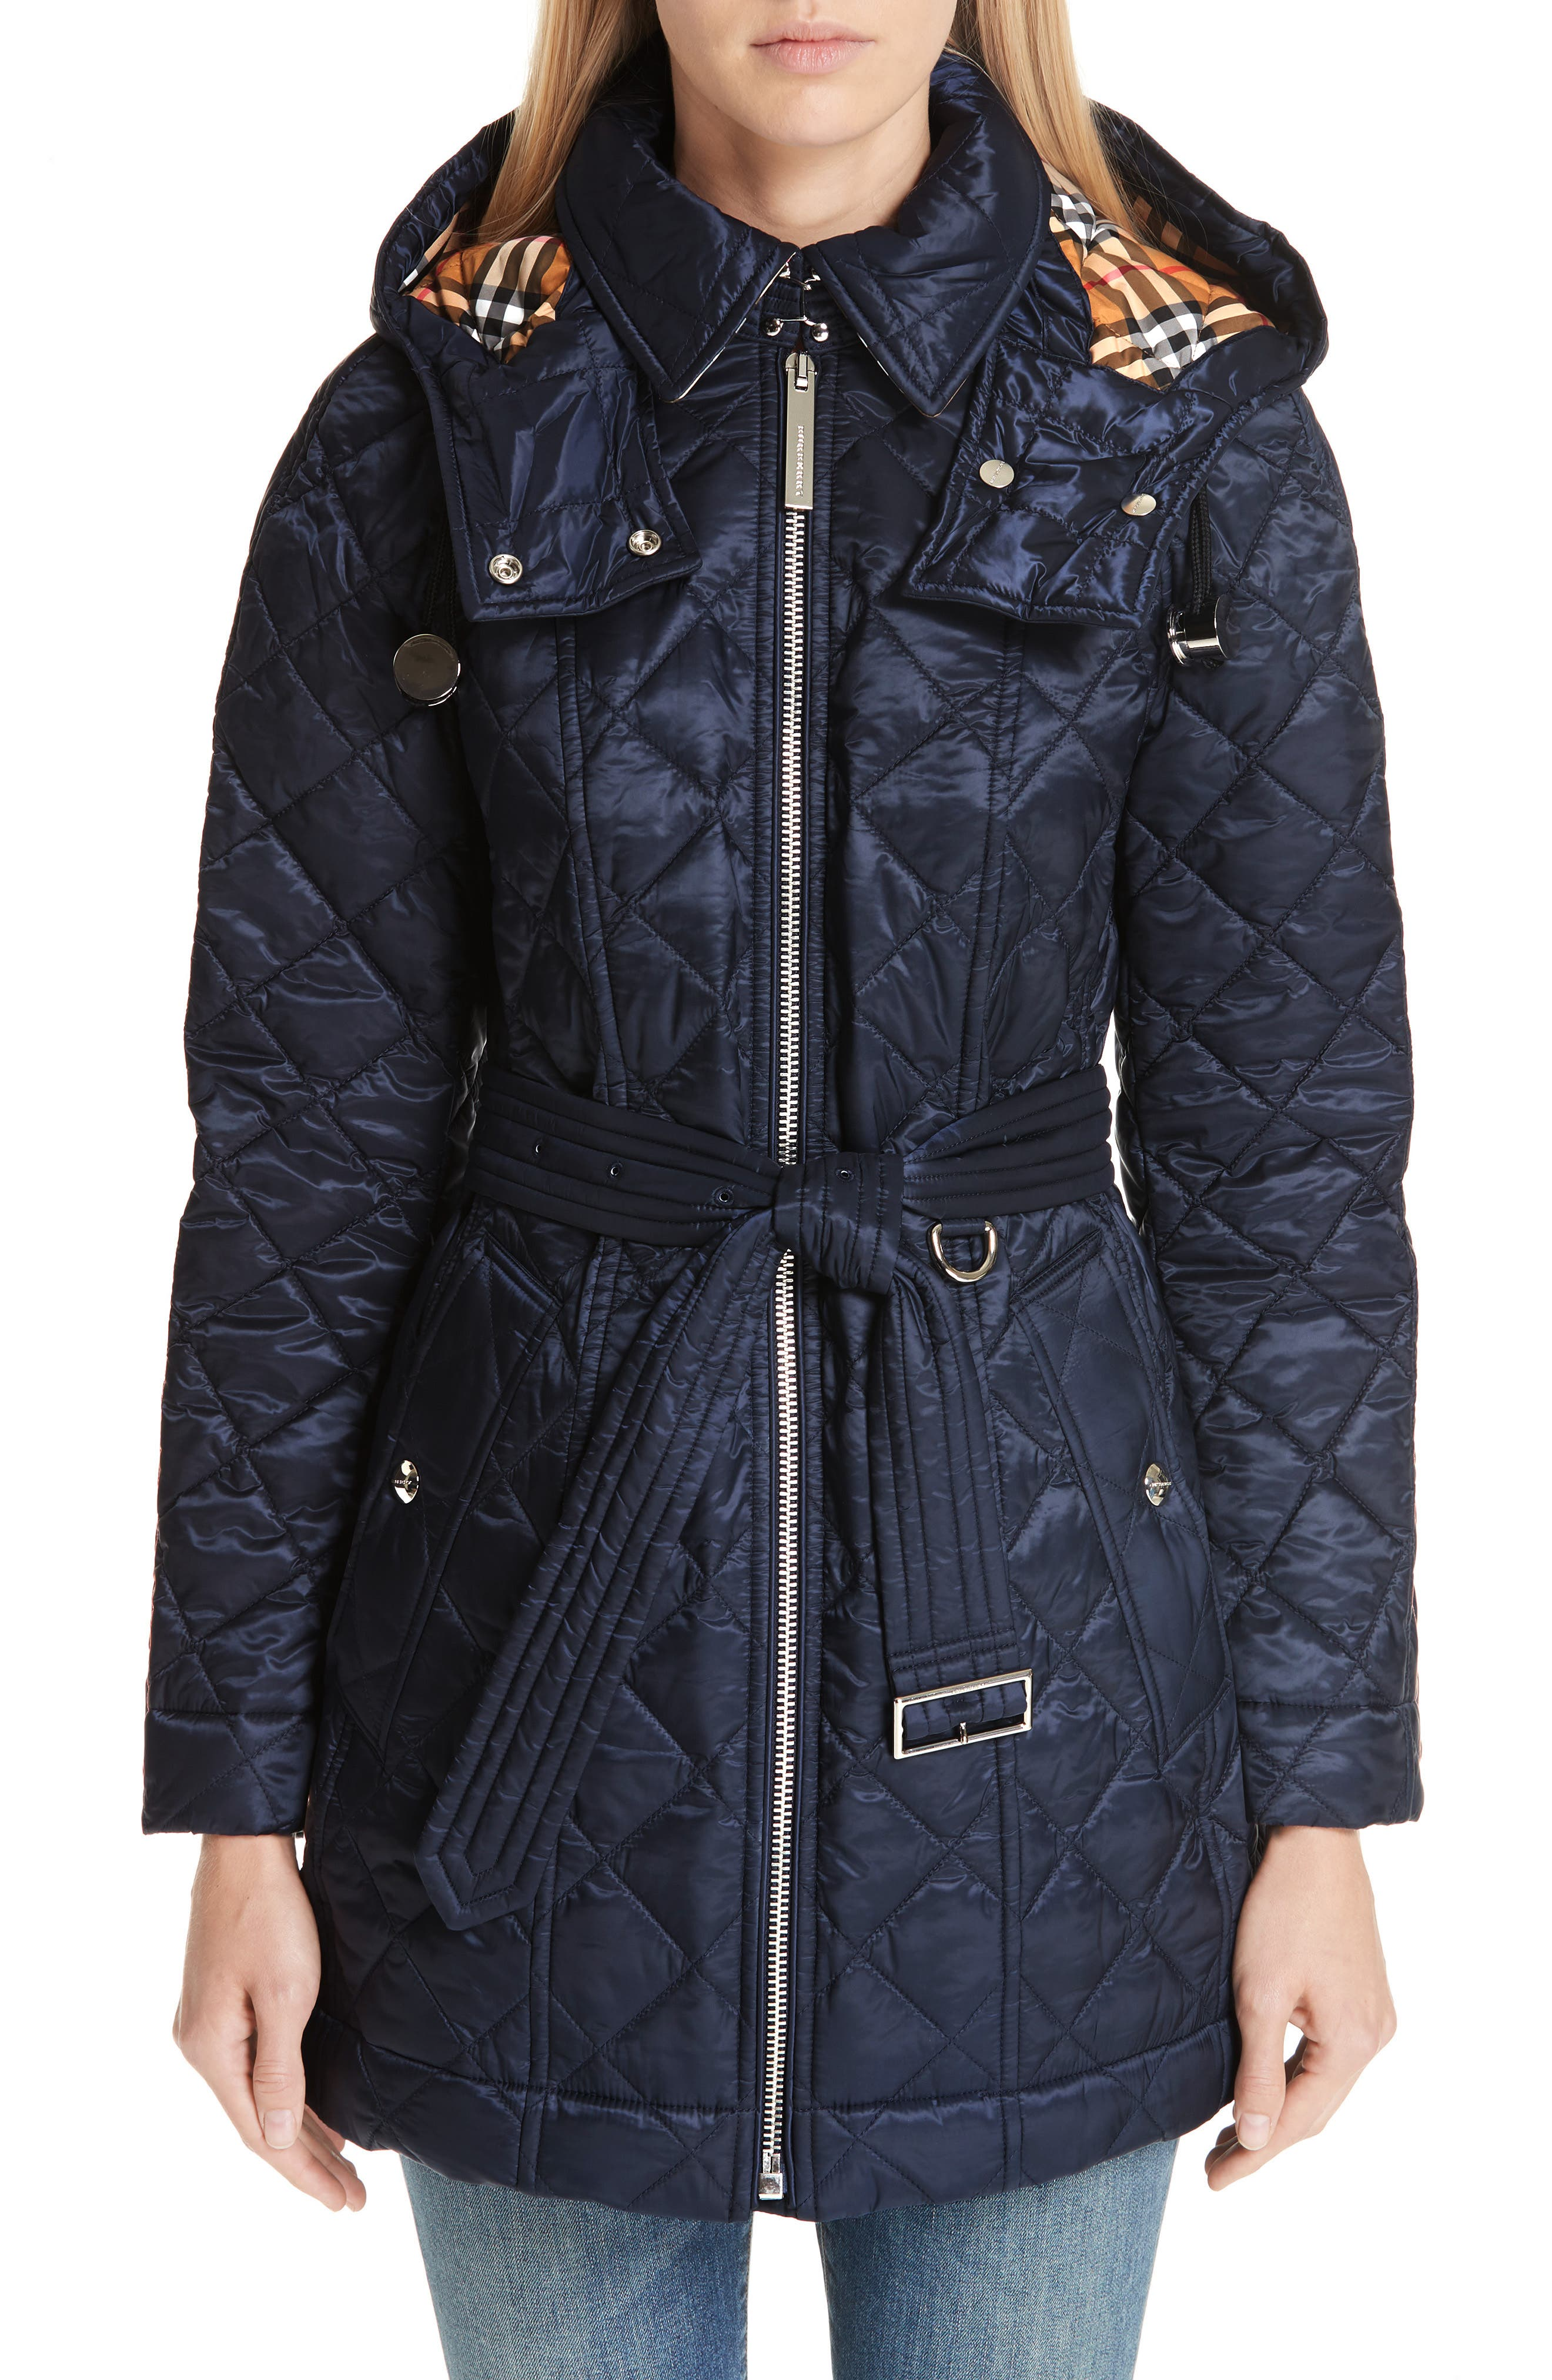 Baughton 18 Quilted Coat,                             Main thumbnail 1, color,                             INK